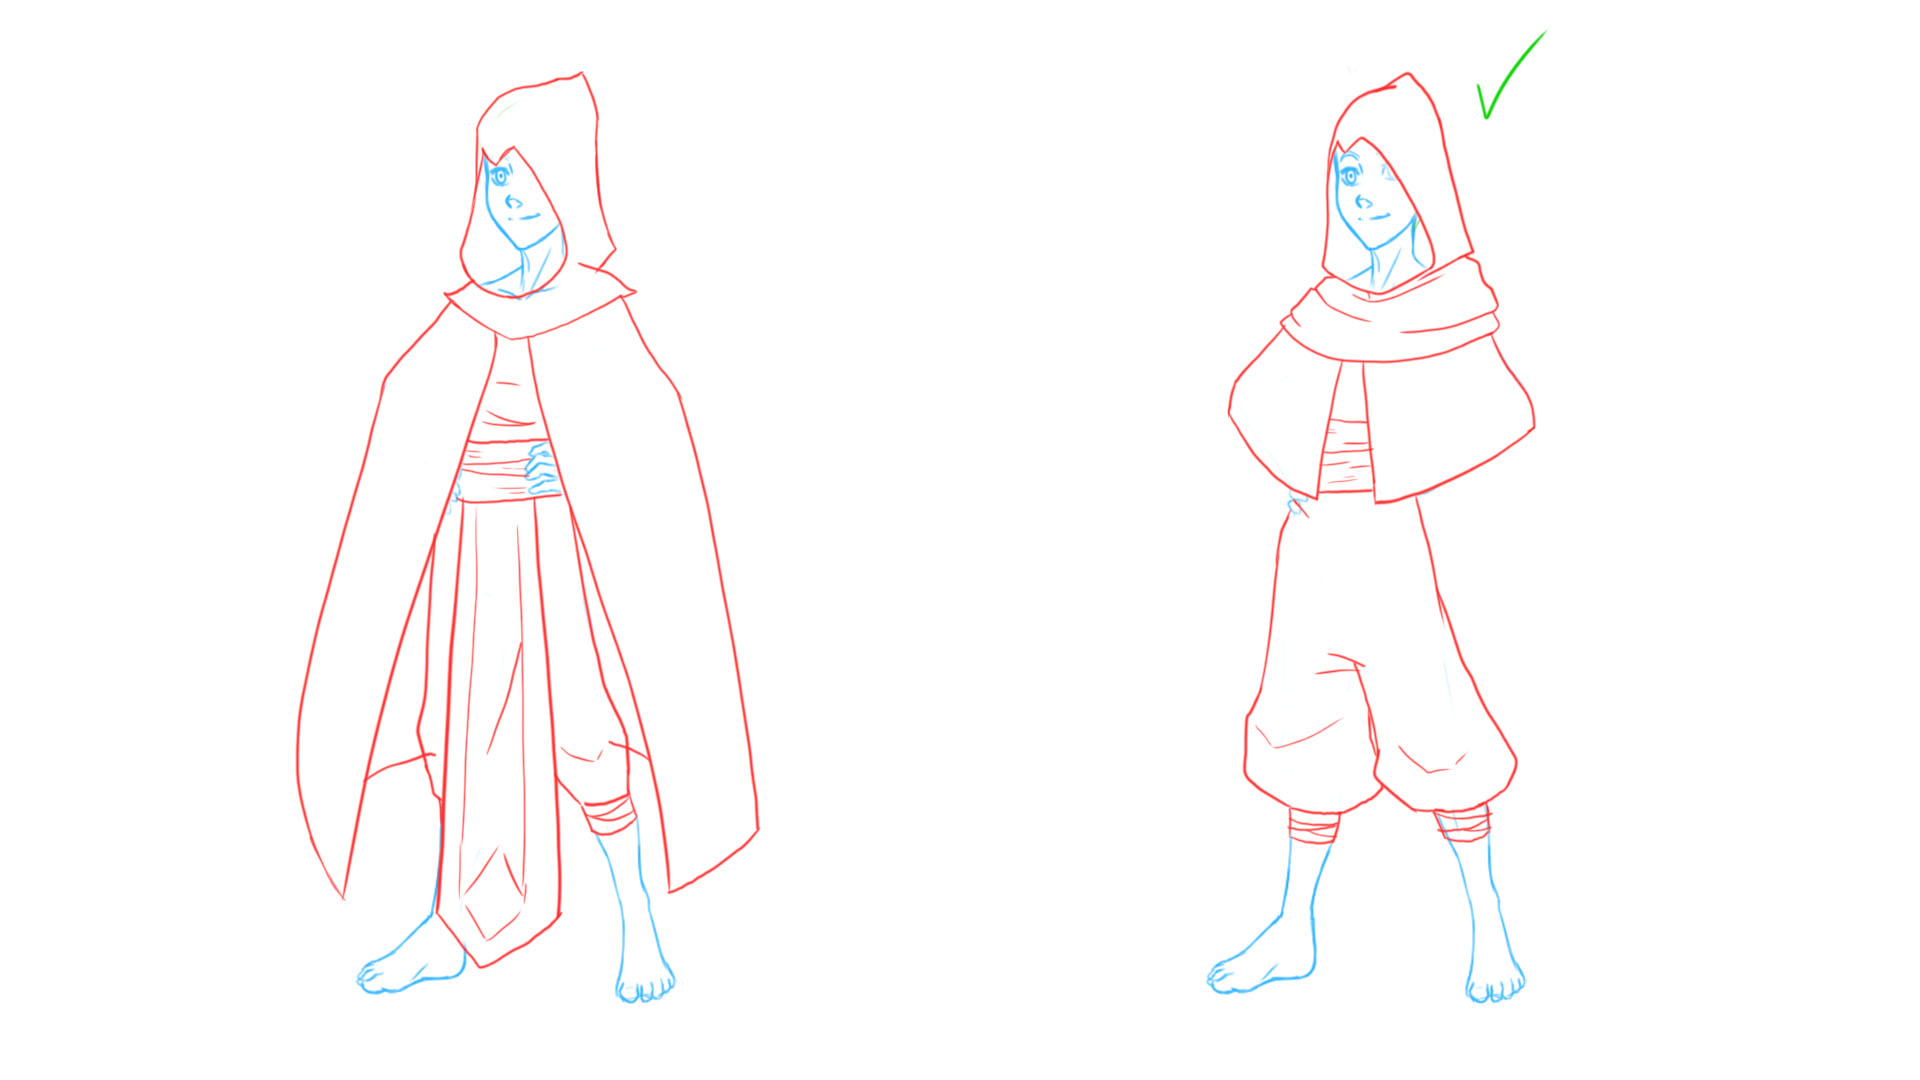 Jake: Robes Concept 1